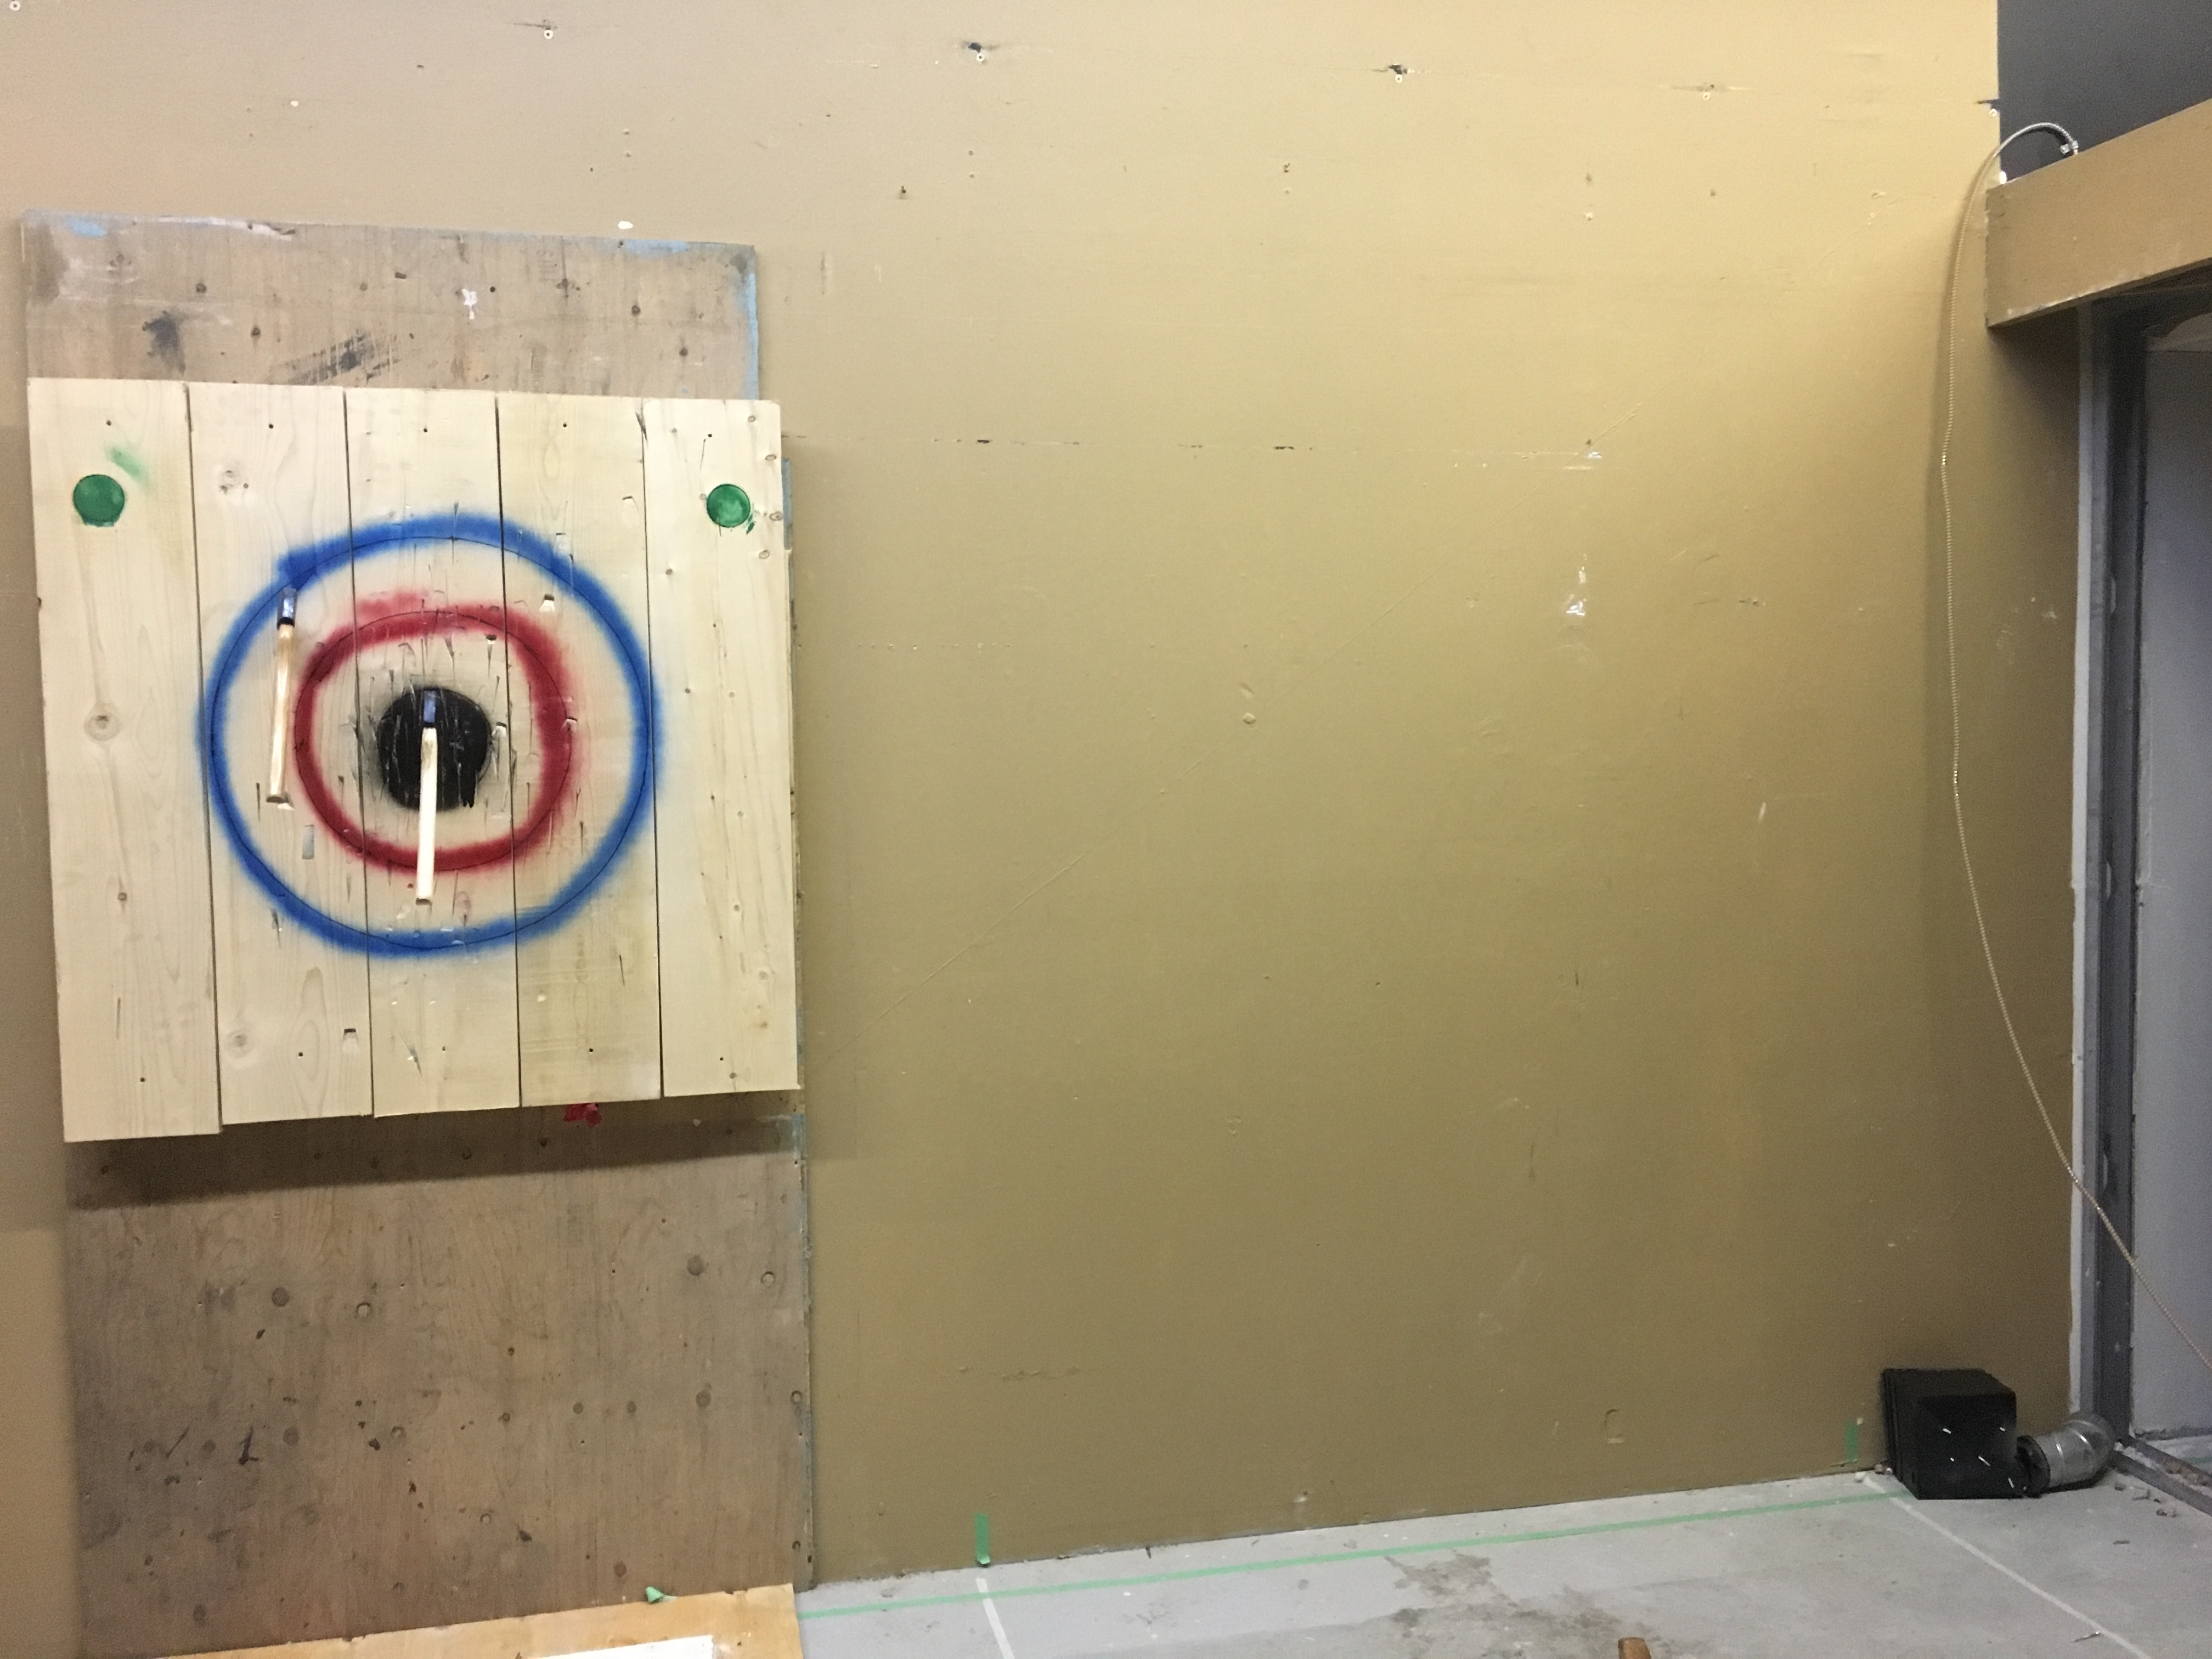 Before photos of Forged Axe Throwing